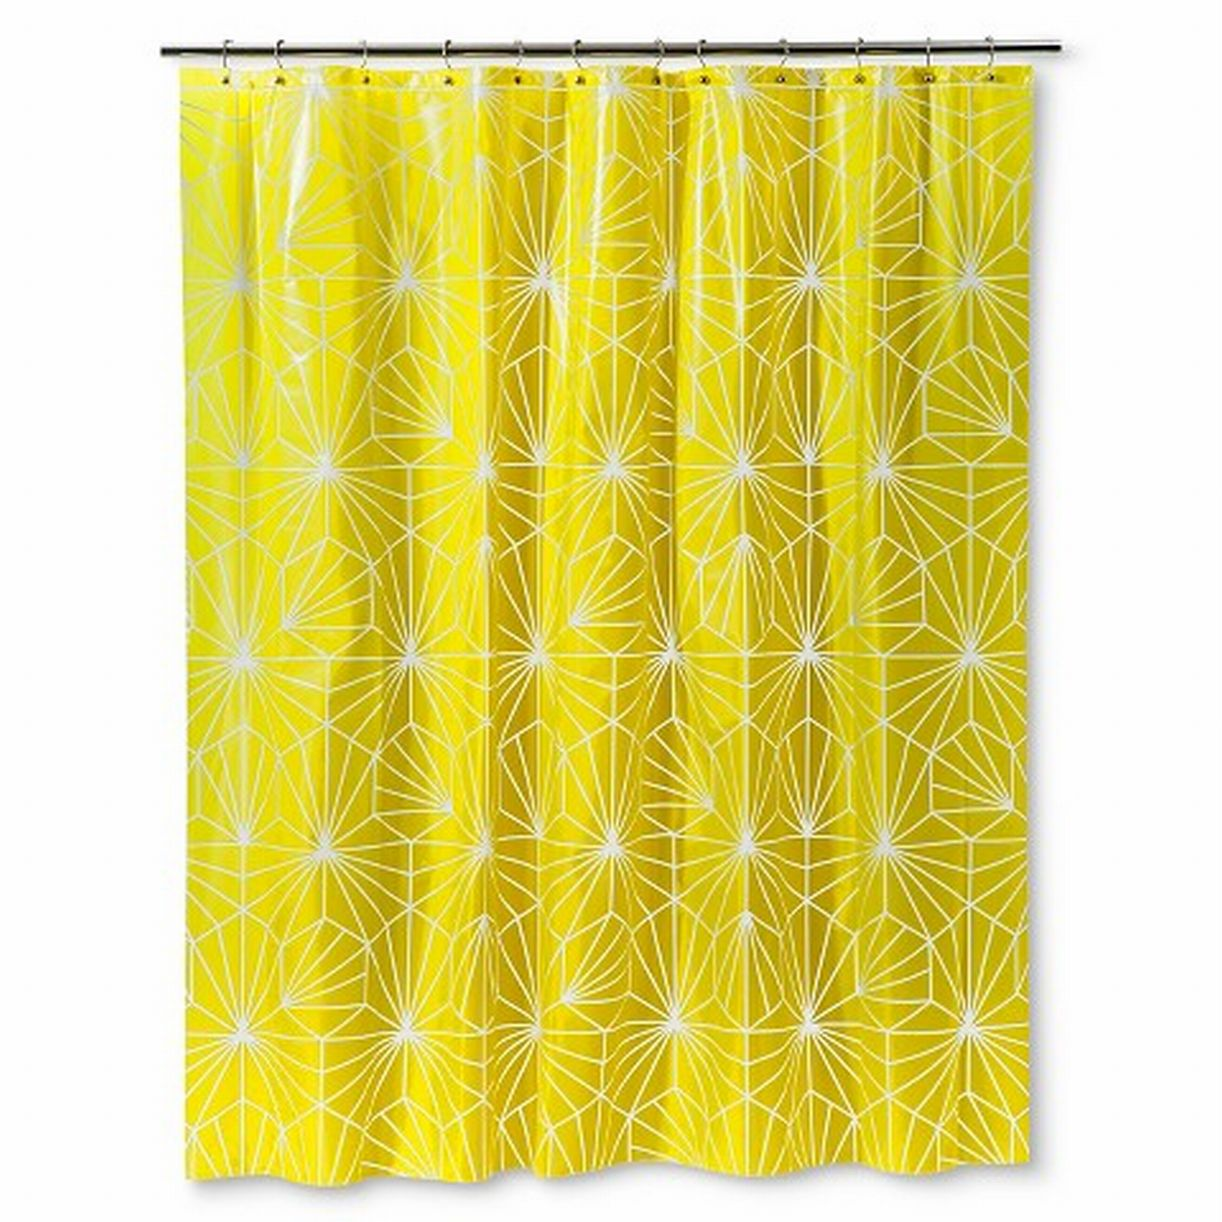 Bright Yellow Geometric Starburst PEVA Vinyl Shower Curtain Bath